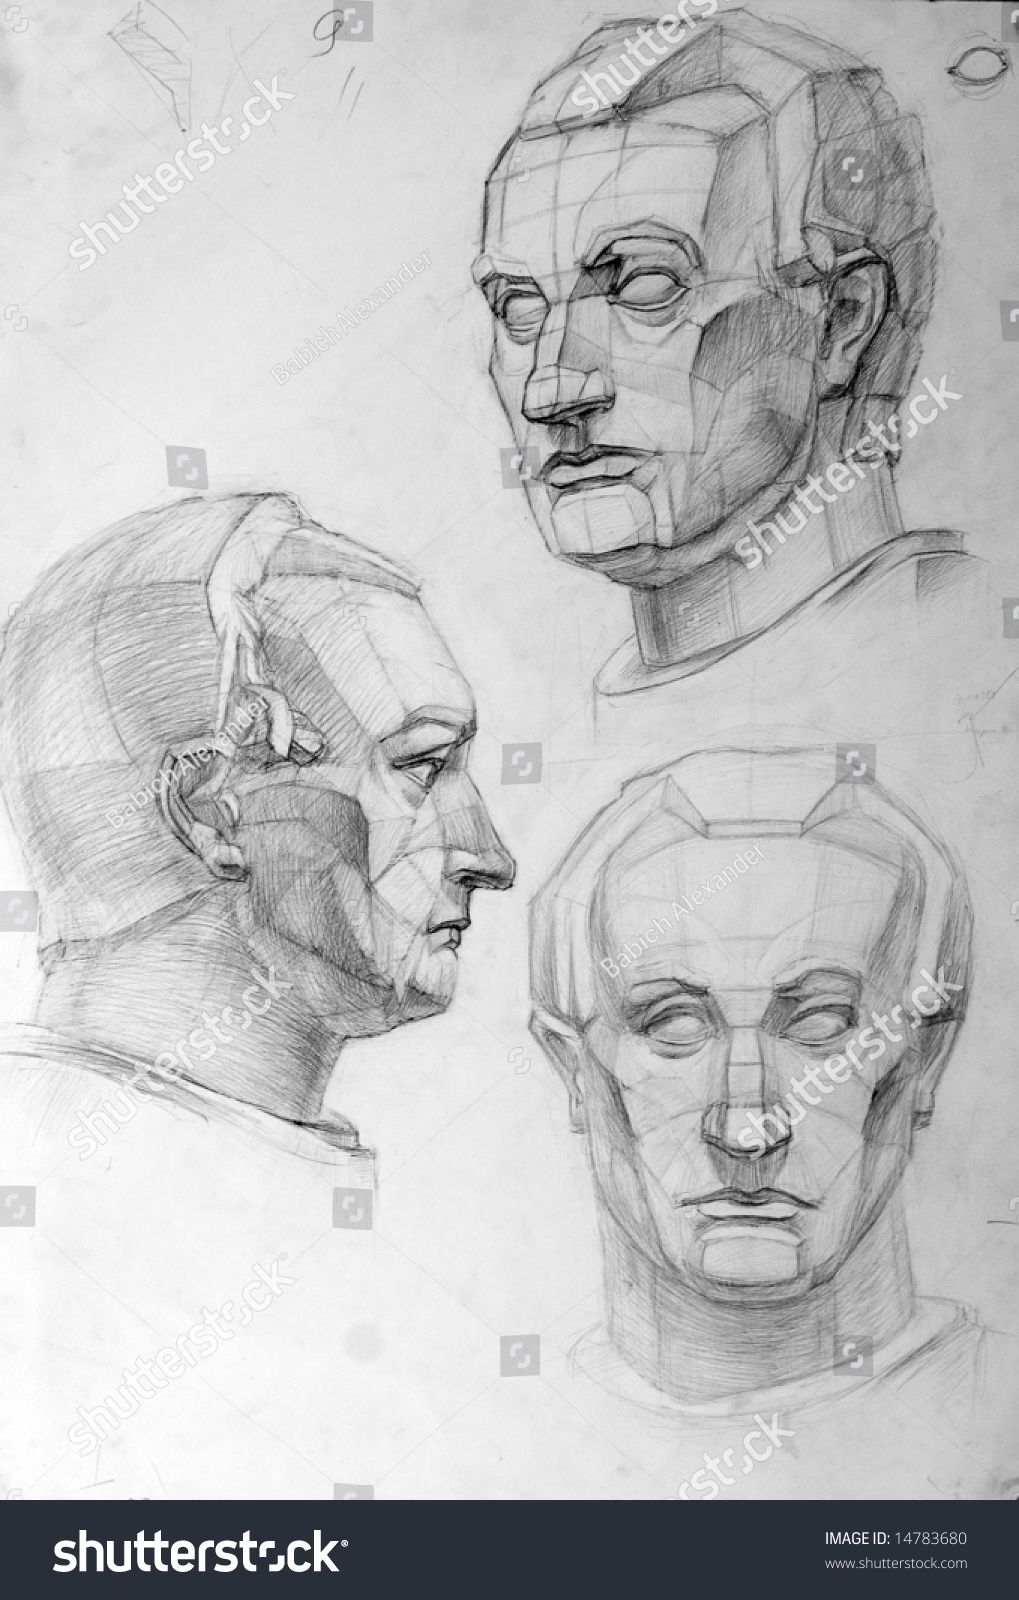 Pencil drawings of gata milata academical art i am the author of this drawing